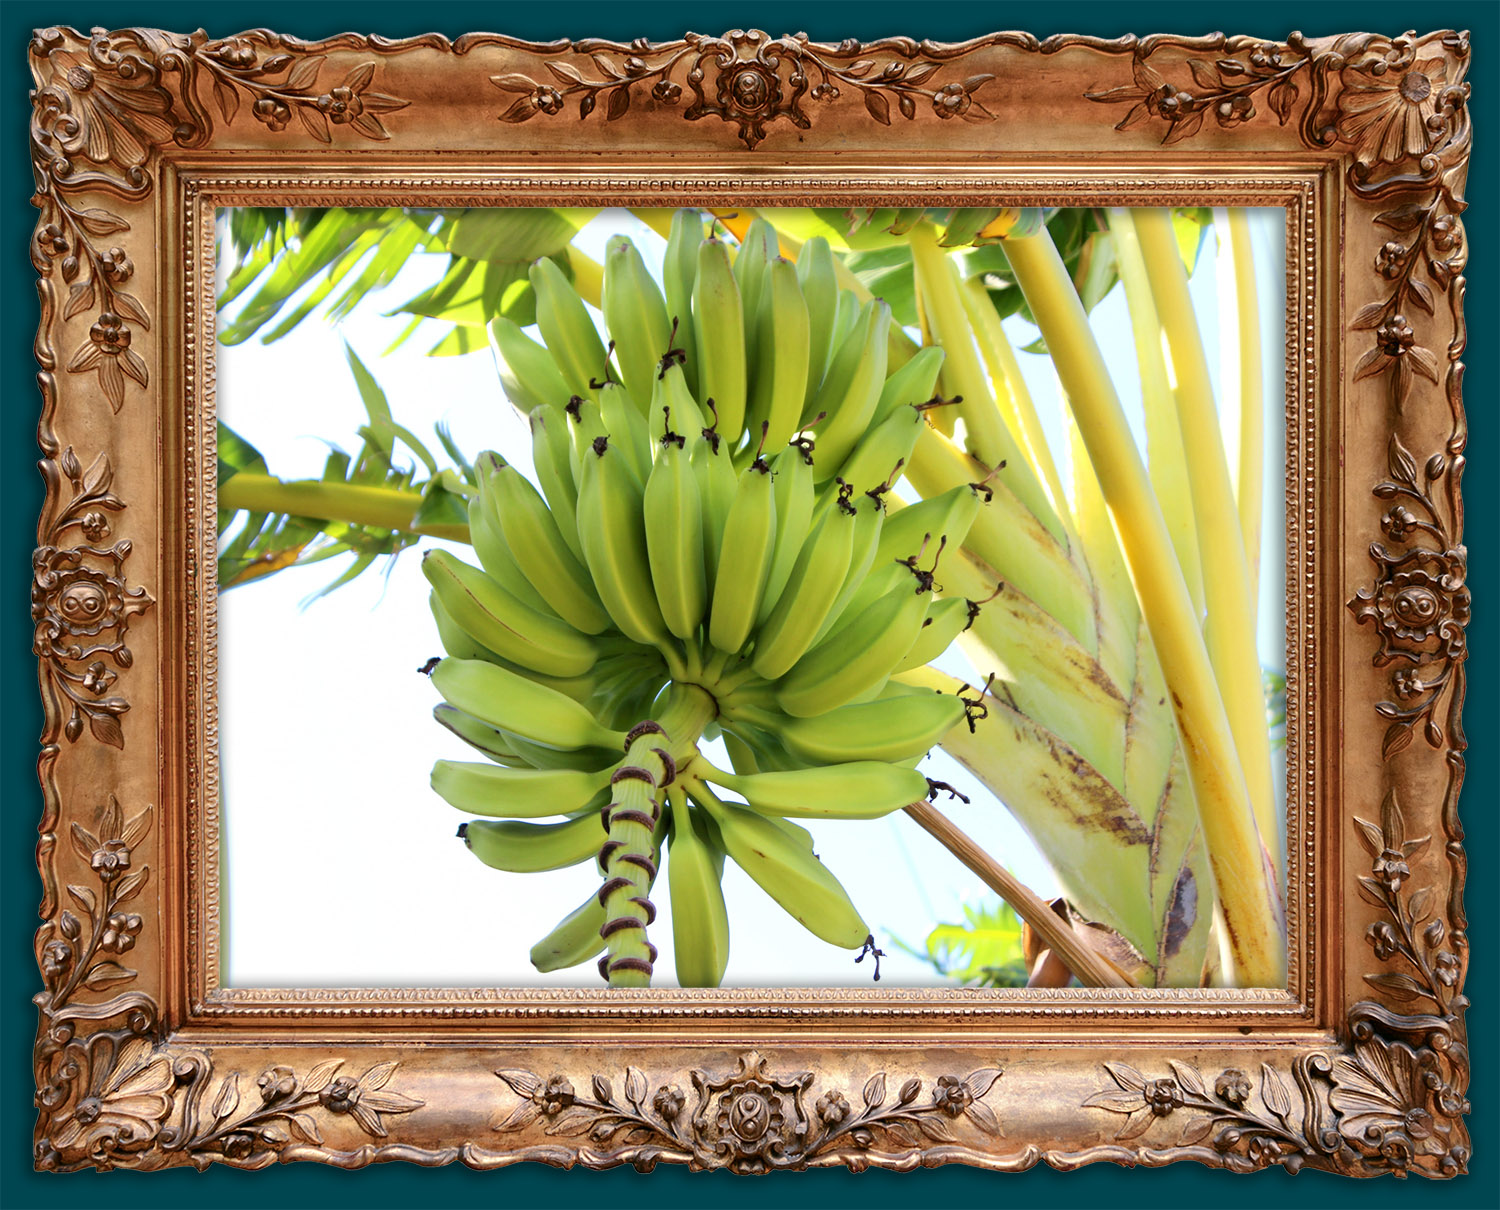 Bananas high up in our trees